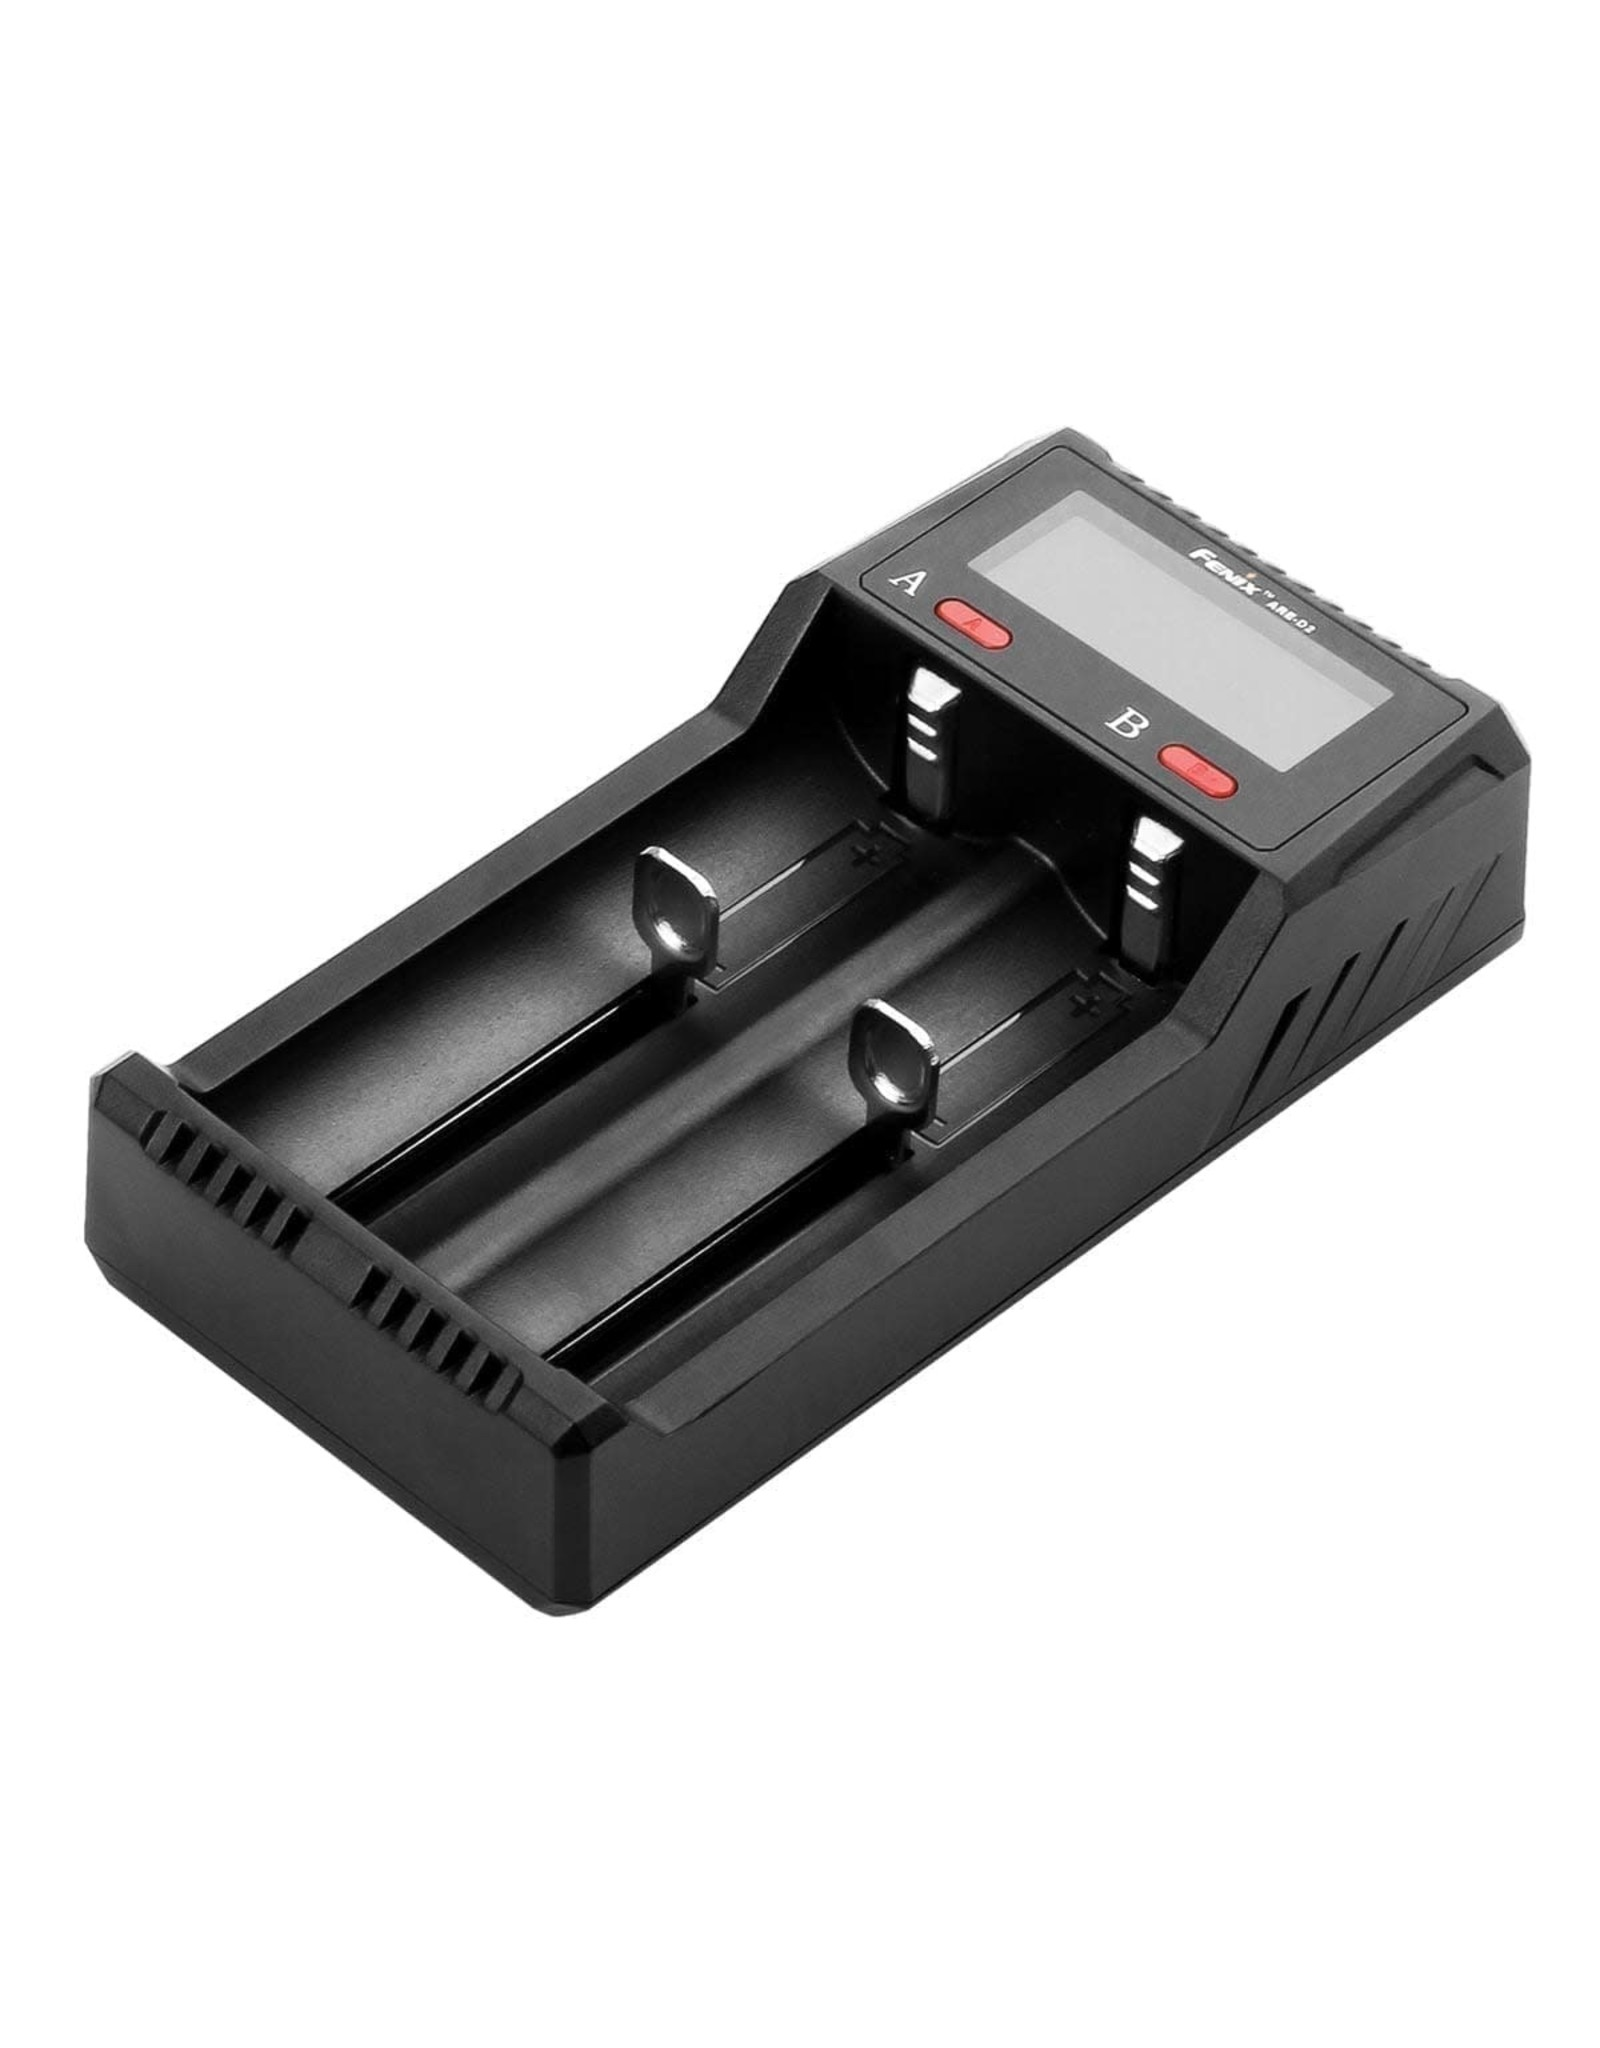 FENIX FENIX ARE-D2 DUAL CHANNEL SMART CHARGER